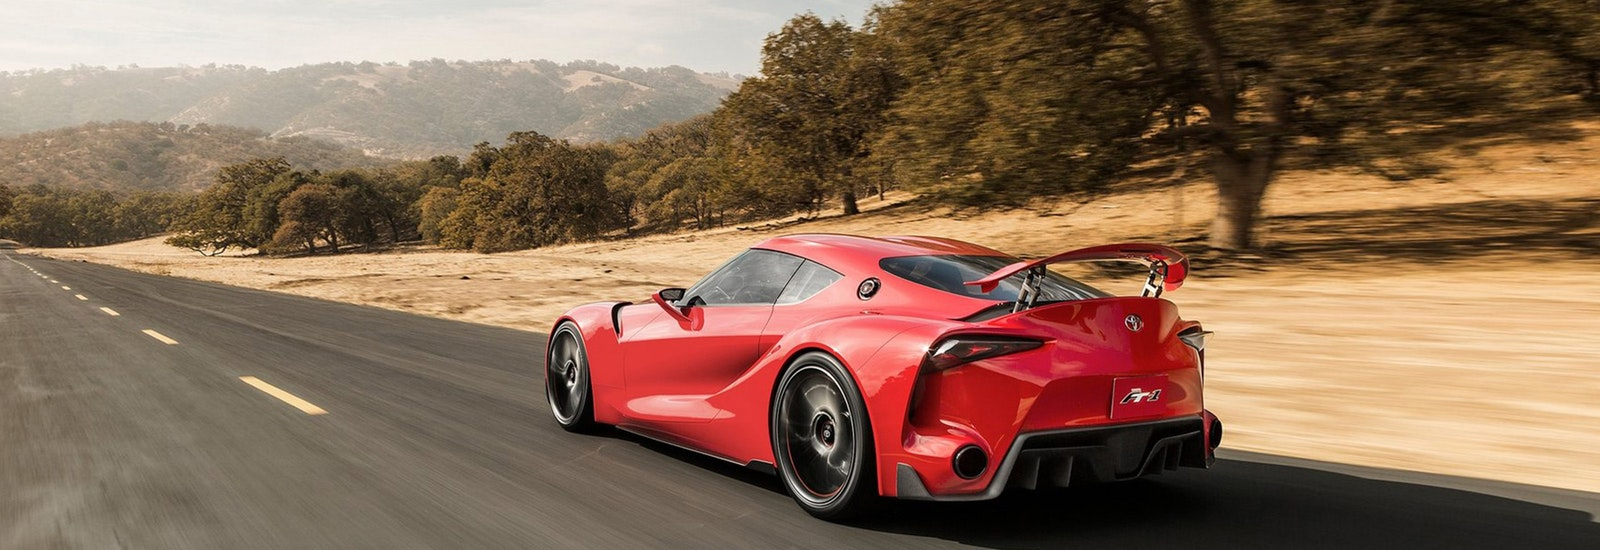 Toyota Ft1 2017 >> 2017 Toyota Supra price, specs & release date | carwow